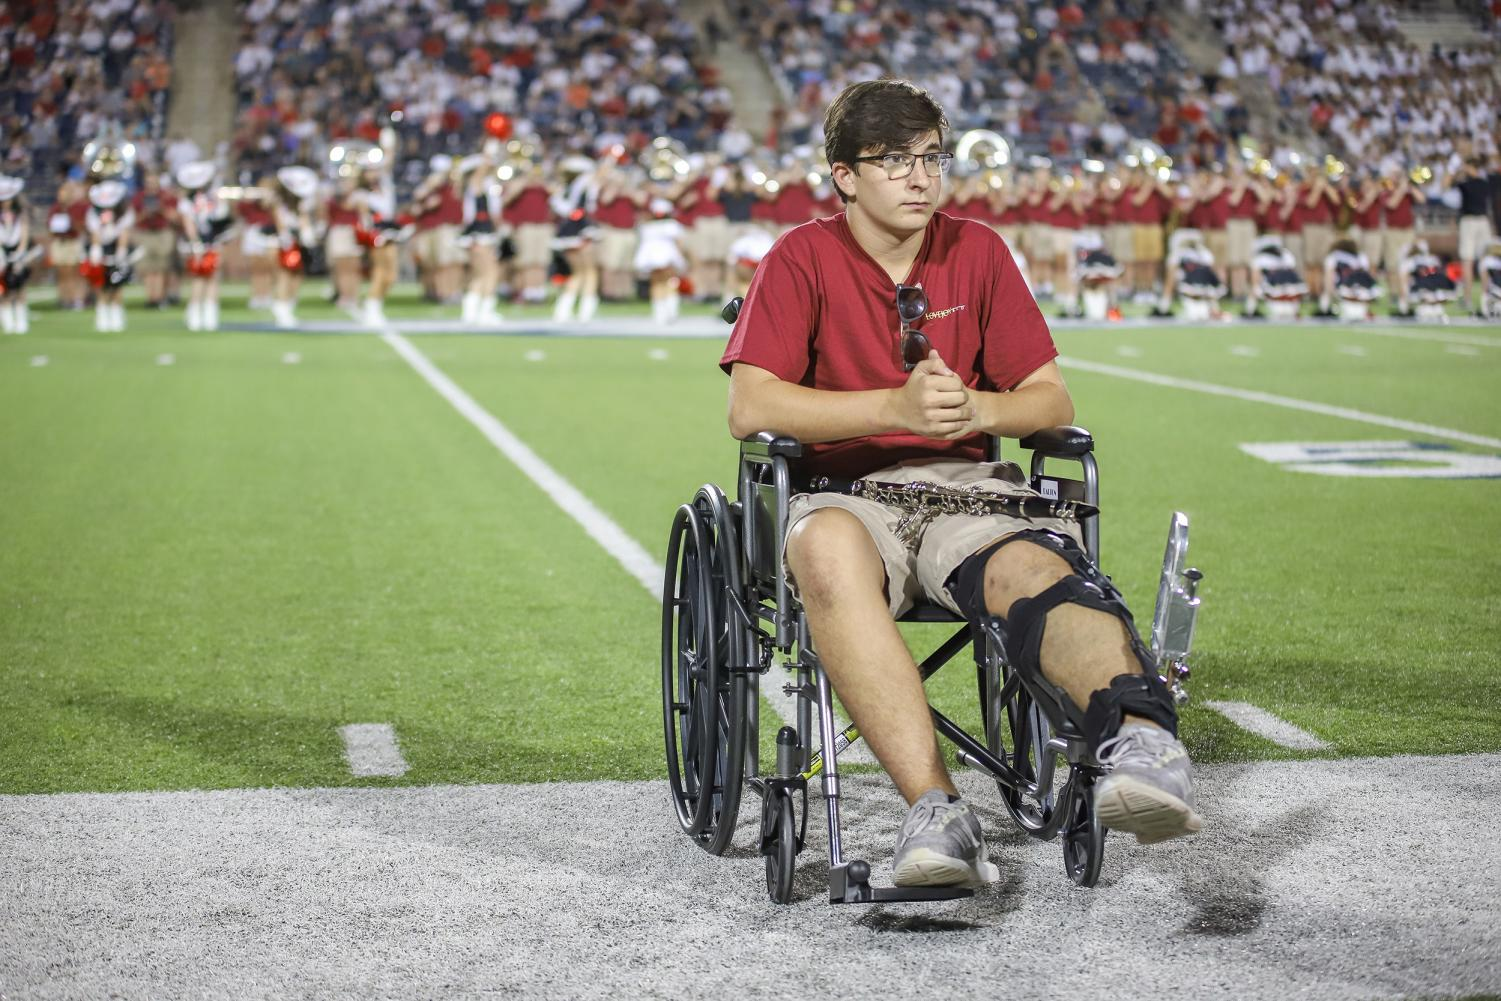 Freshman+Chris+Dechant+sits+on+the+sidelines+during+the+majestics+performance.+Dechant+was+unable+to+march+since+he+broke+his+knee+cap+in+the+band+hall+two+days+before+the+game.+Instead+of+marching%2C+Dechant+played+his+clarinet+in+the+front+next+to+the+front+ensemble+during+the+band+halftime+show.